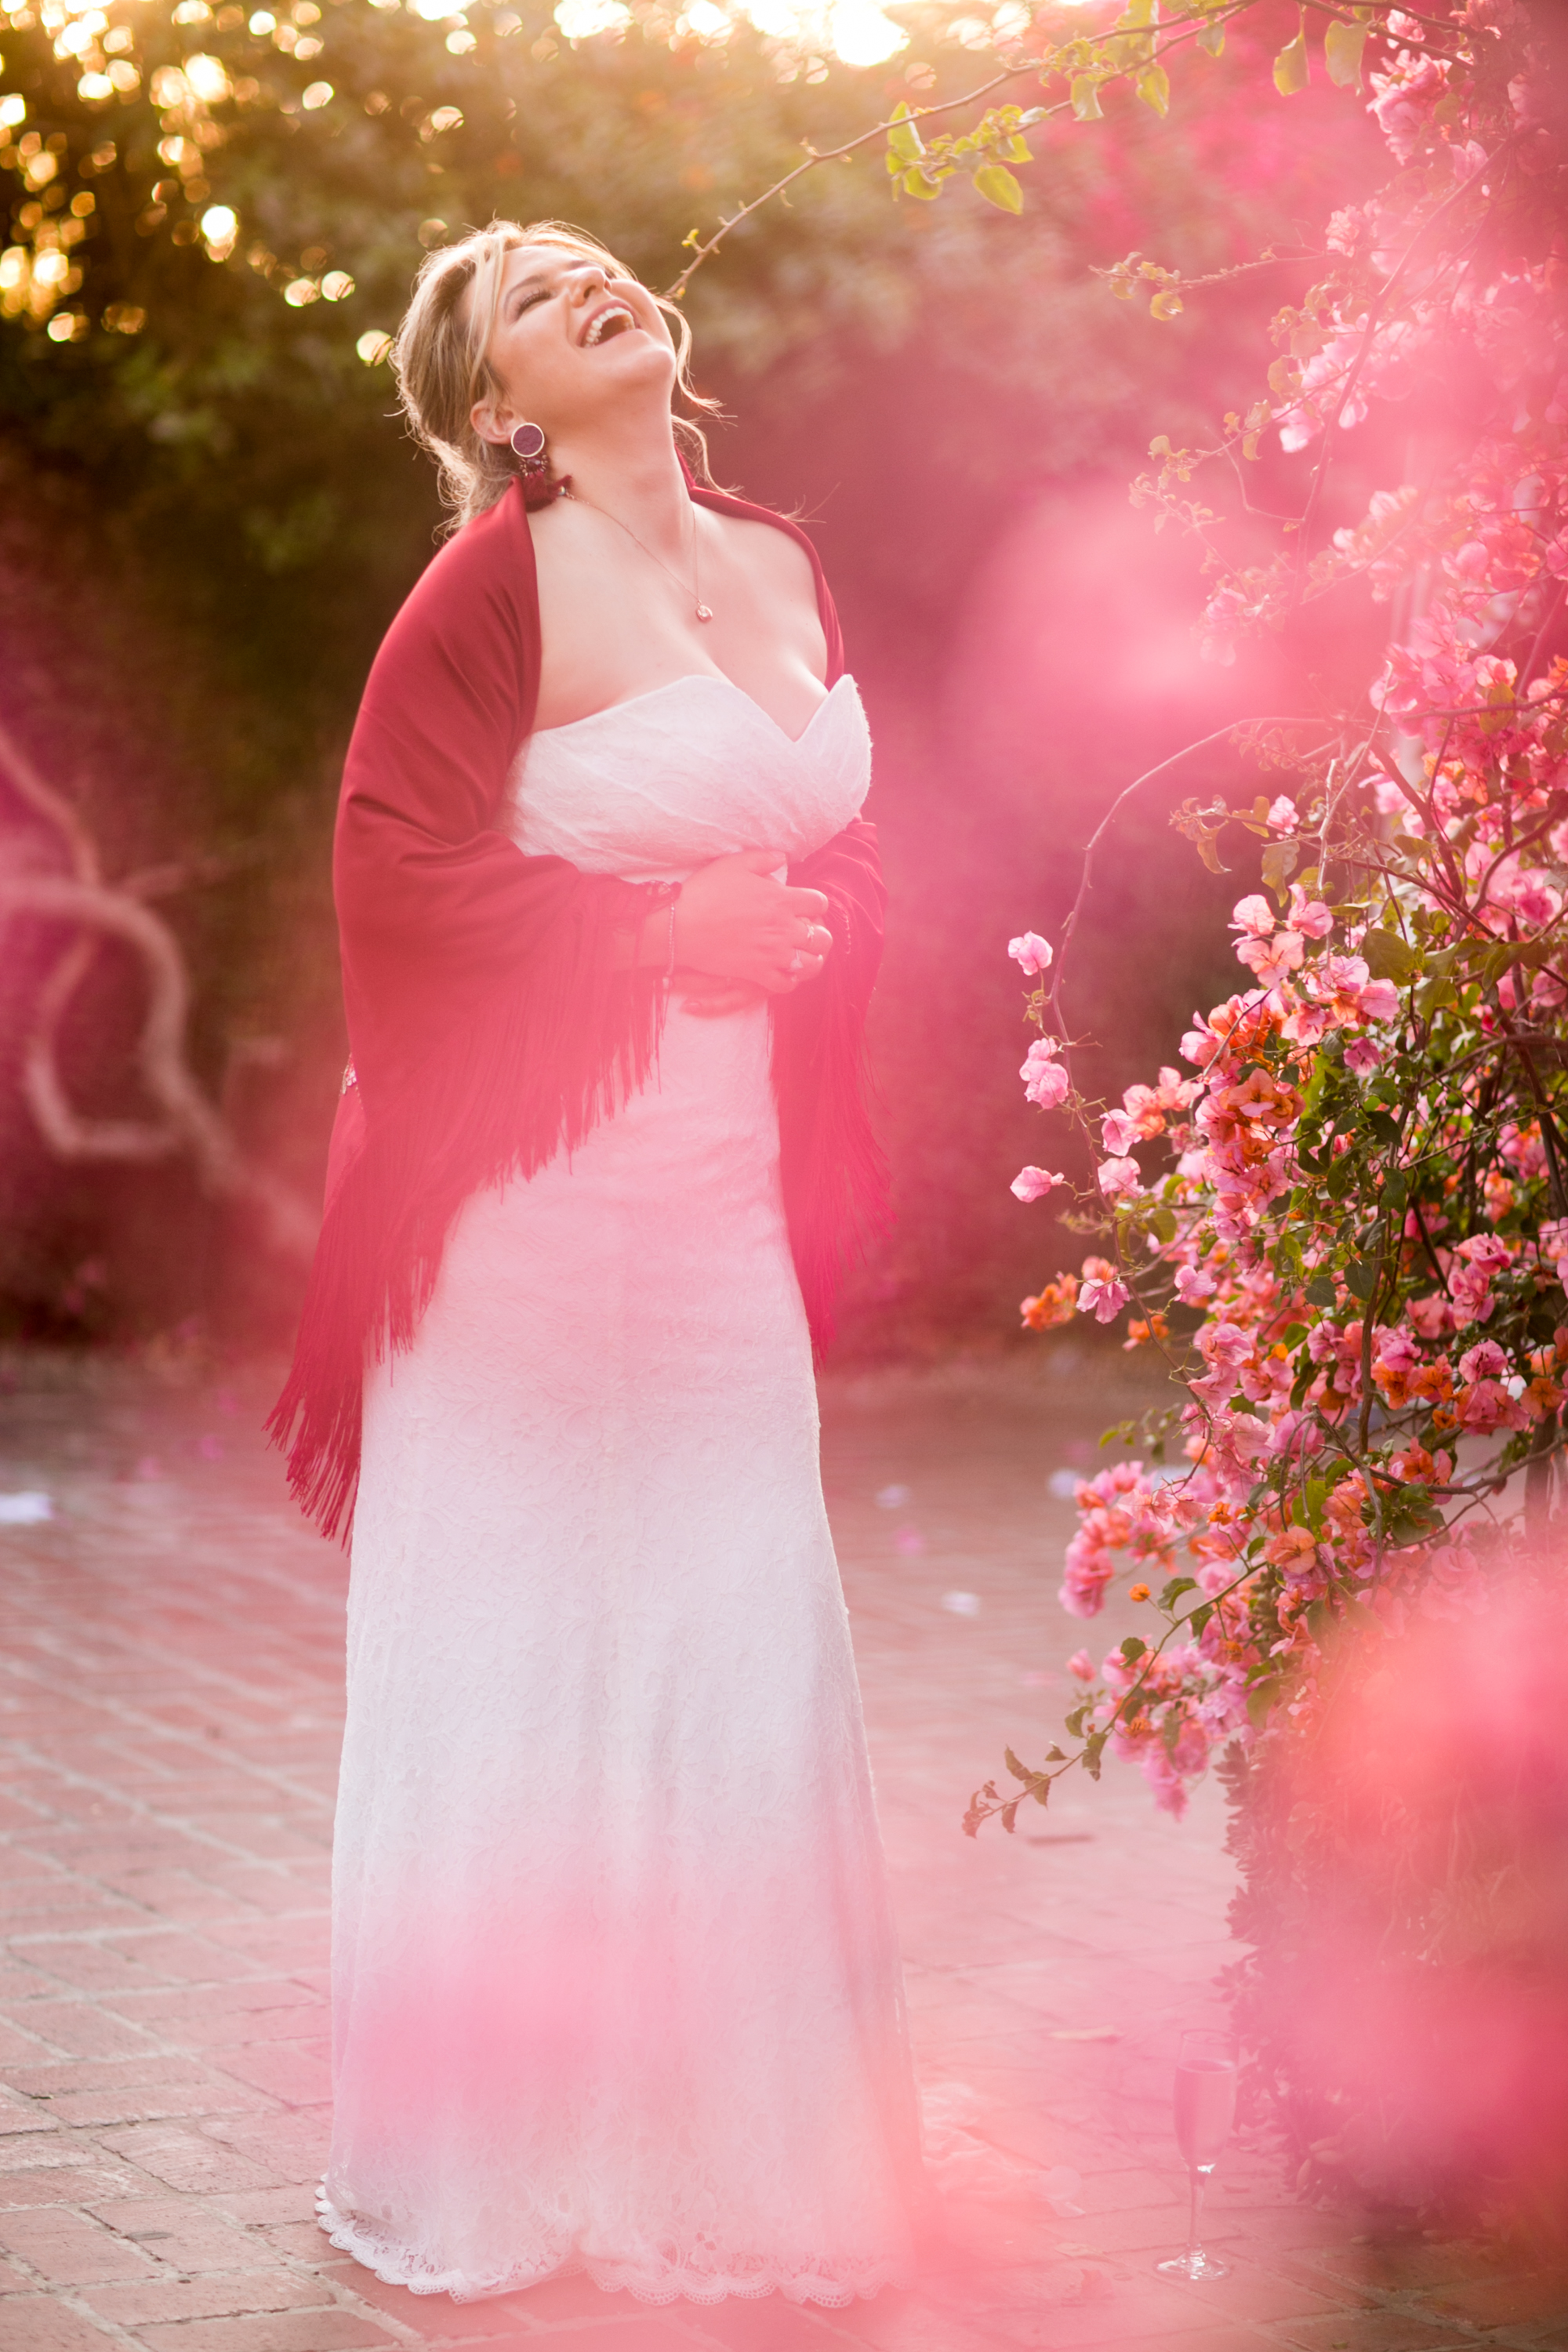 26-2019-May-wedding-ana-web.jpg